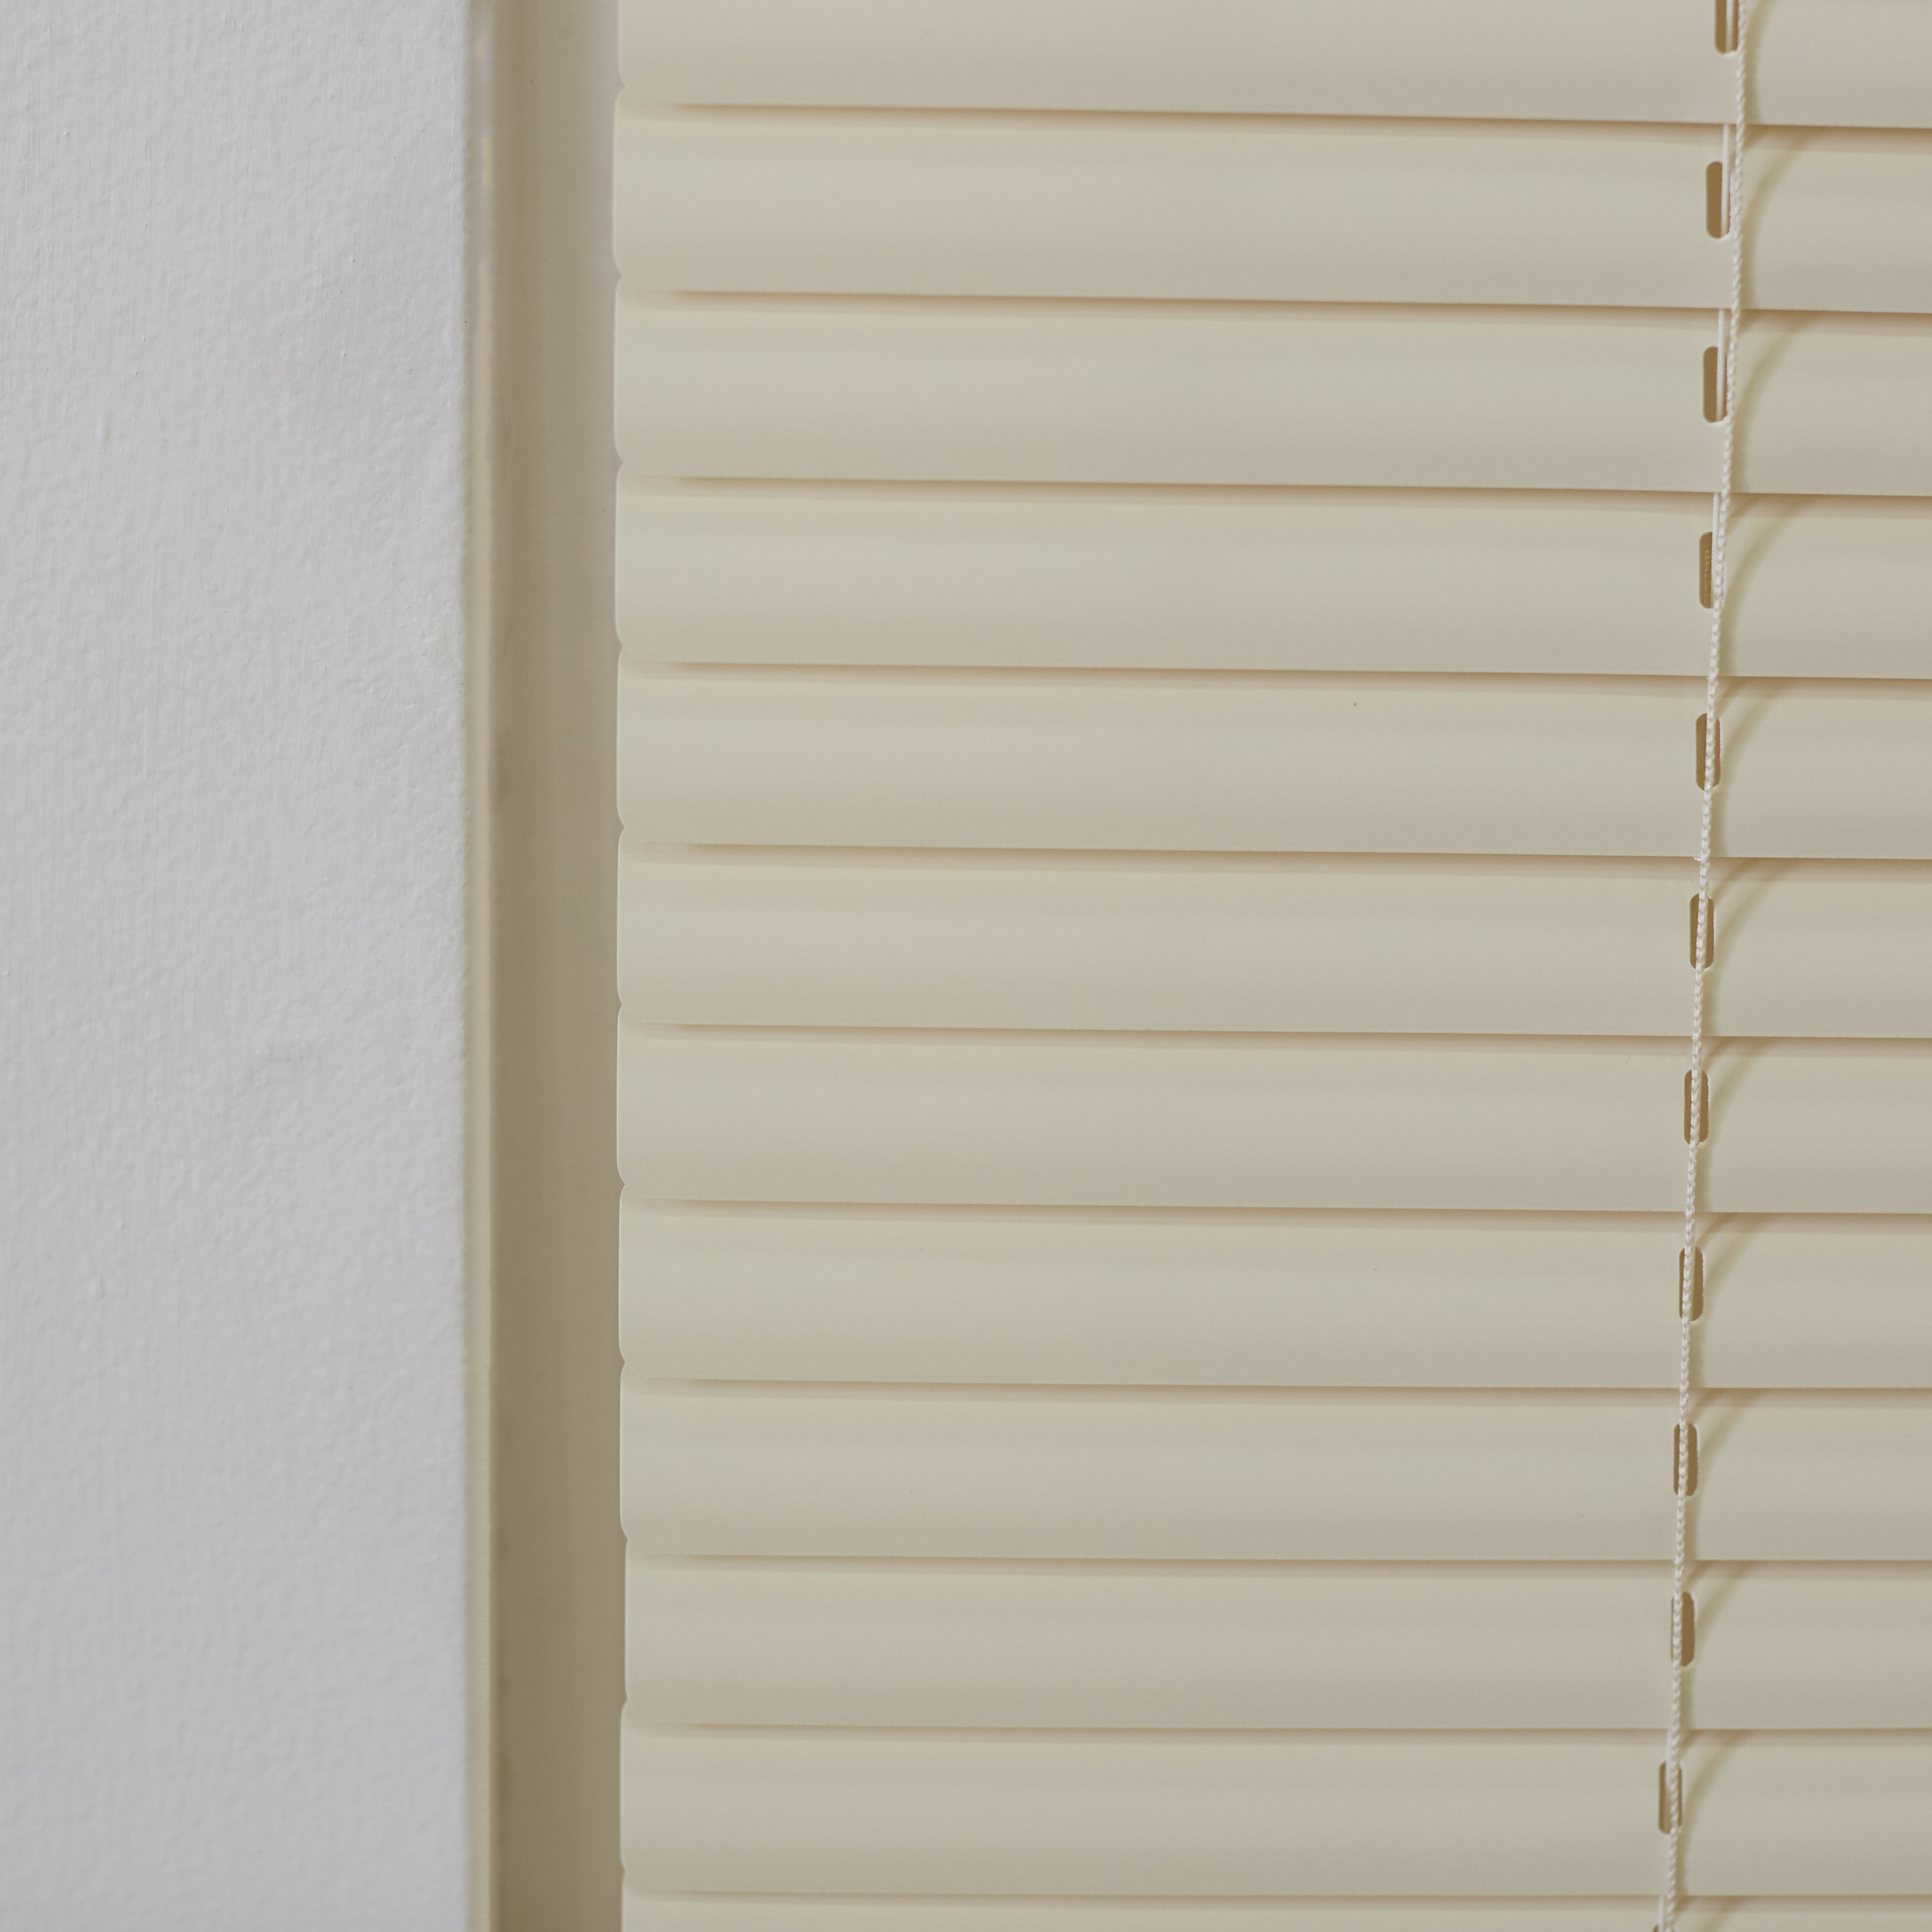 Cut To Fit Blinds | Menards Big Card Login | Menards Window Blinds